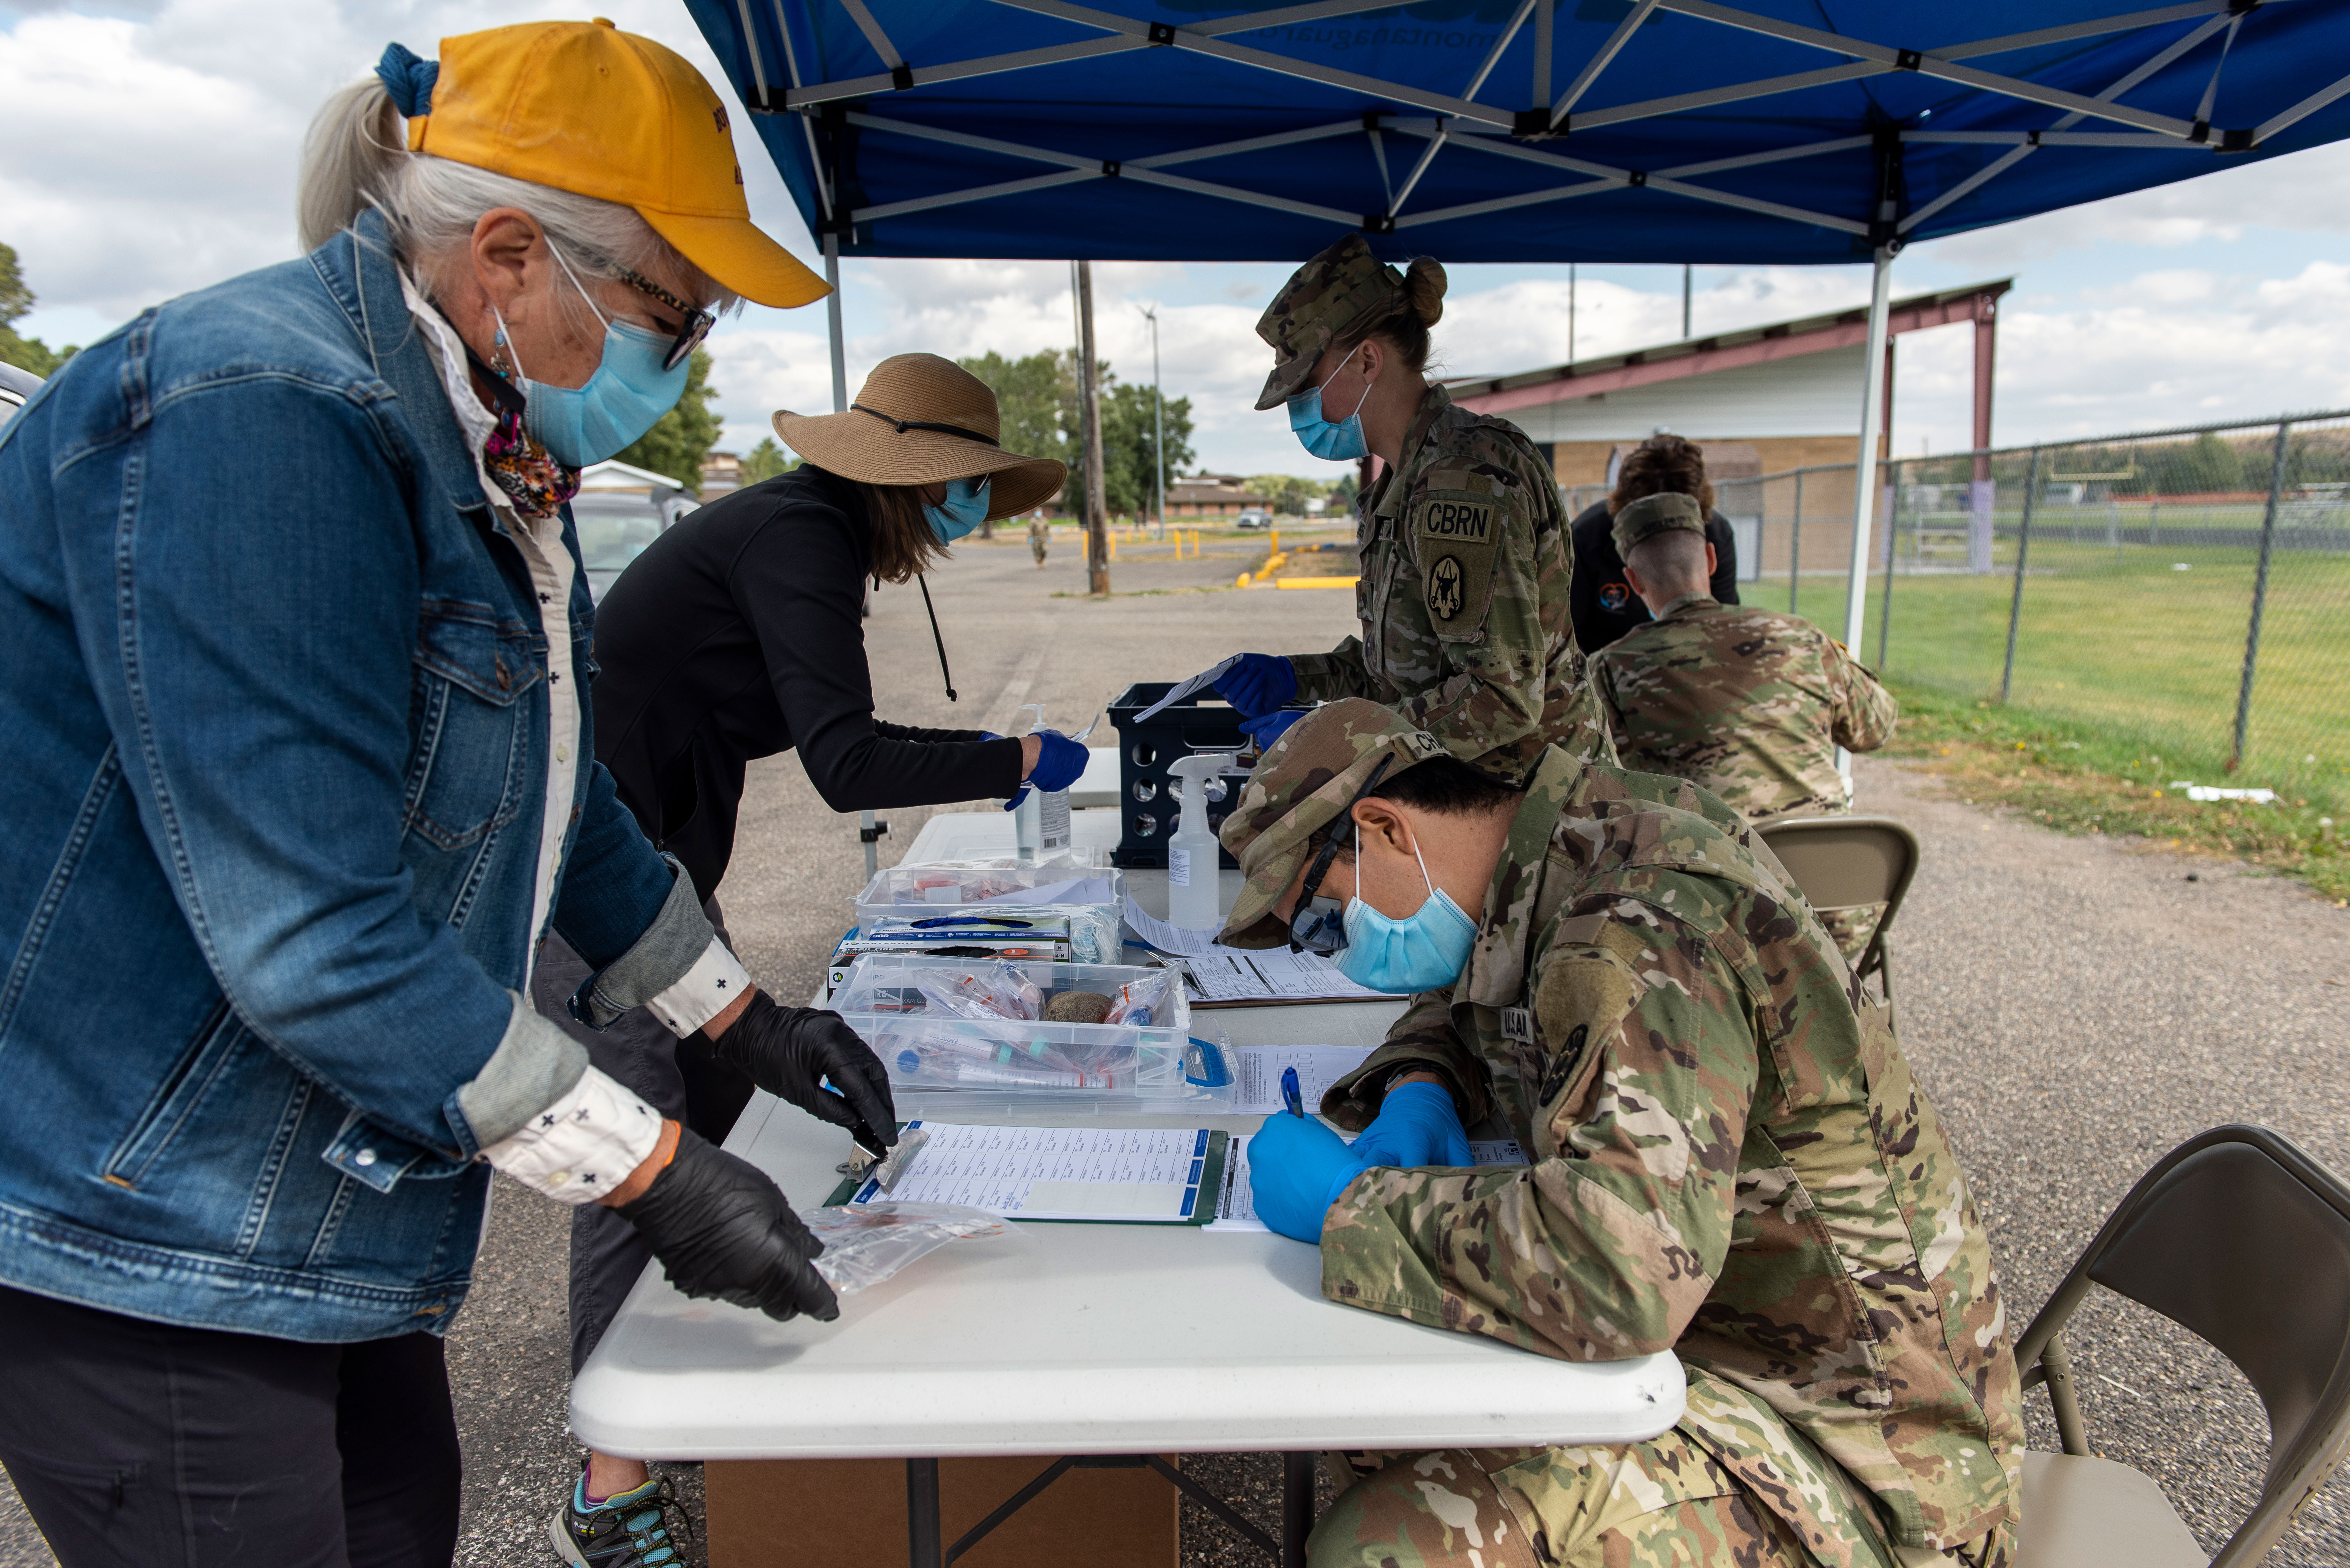 The Park County Health Department and members of the Montana National Guard conduct community surveillance testing for Covid-19 on September 20 in Livingston, Montana.